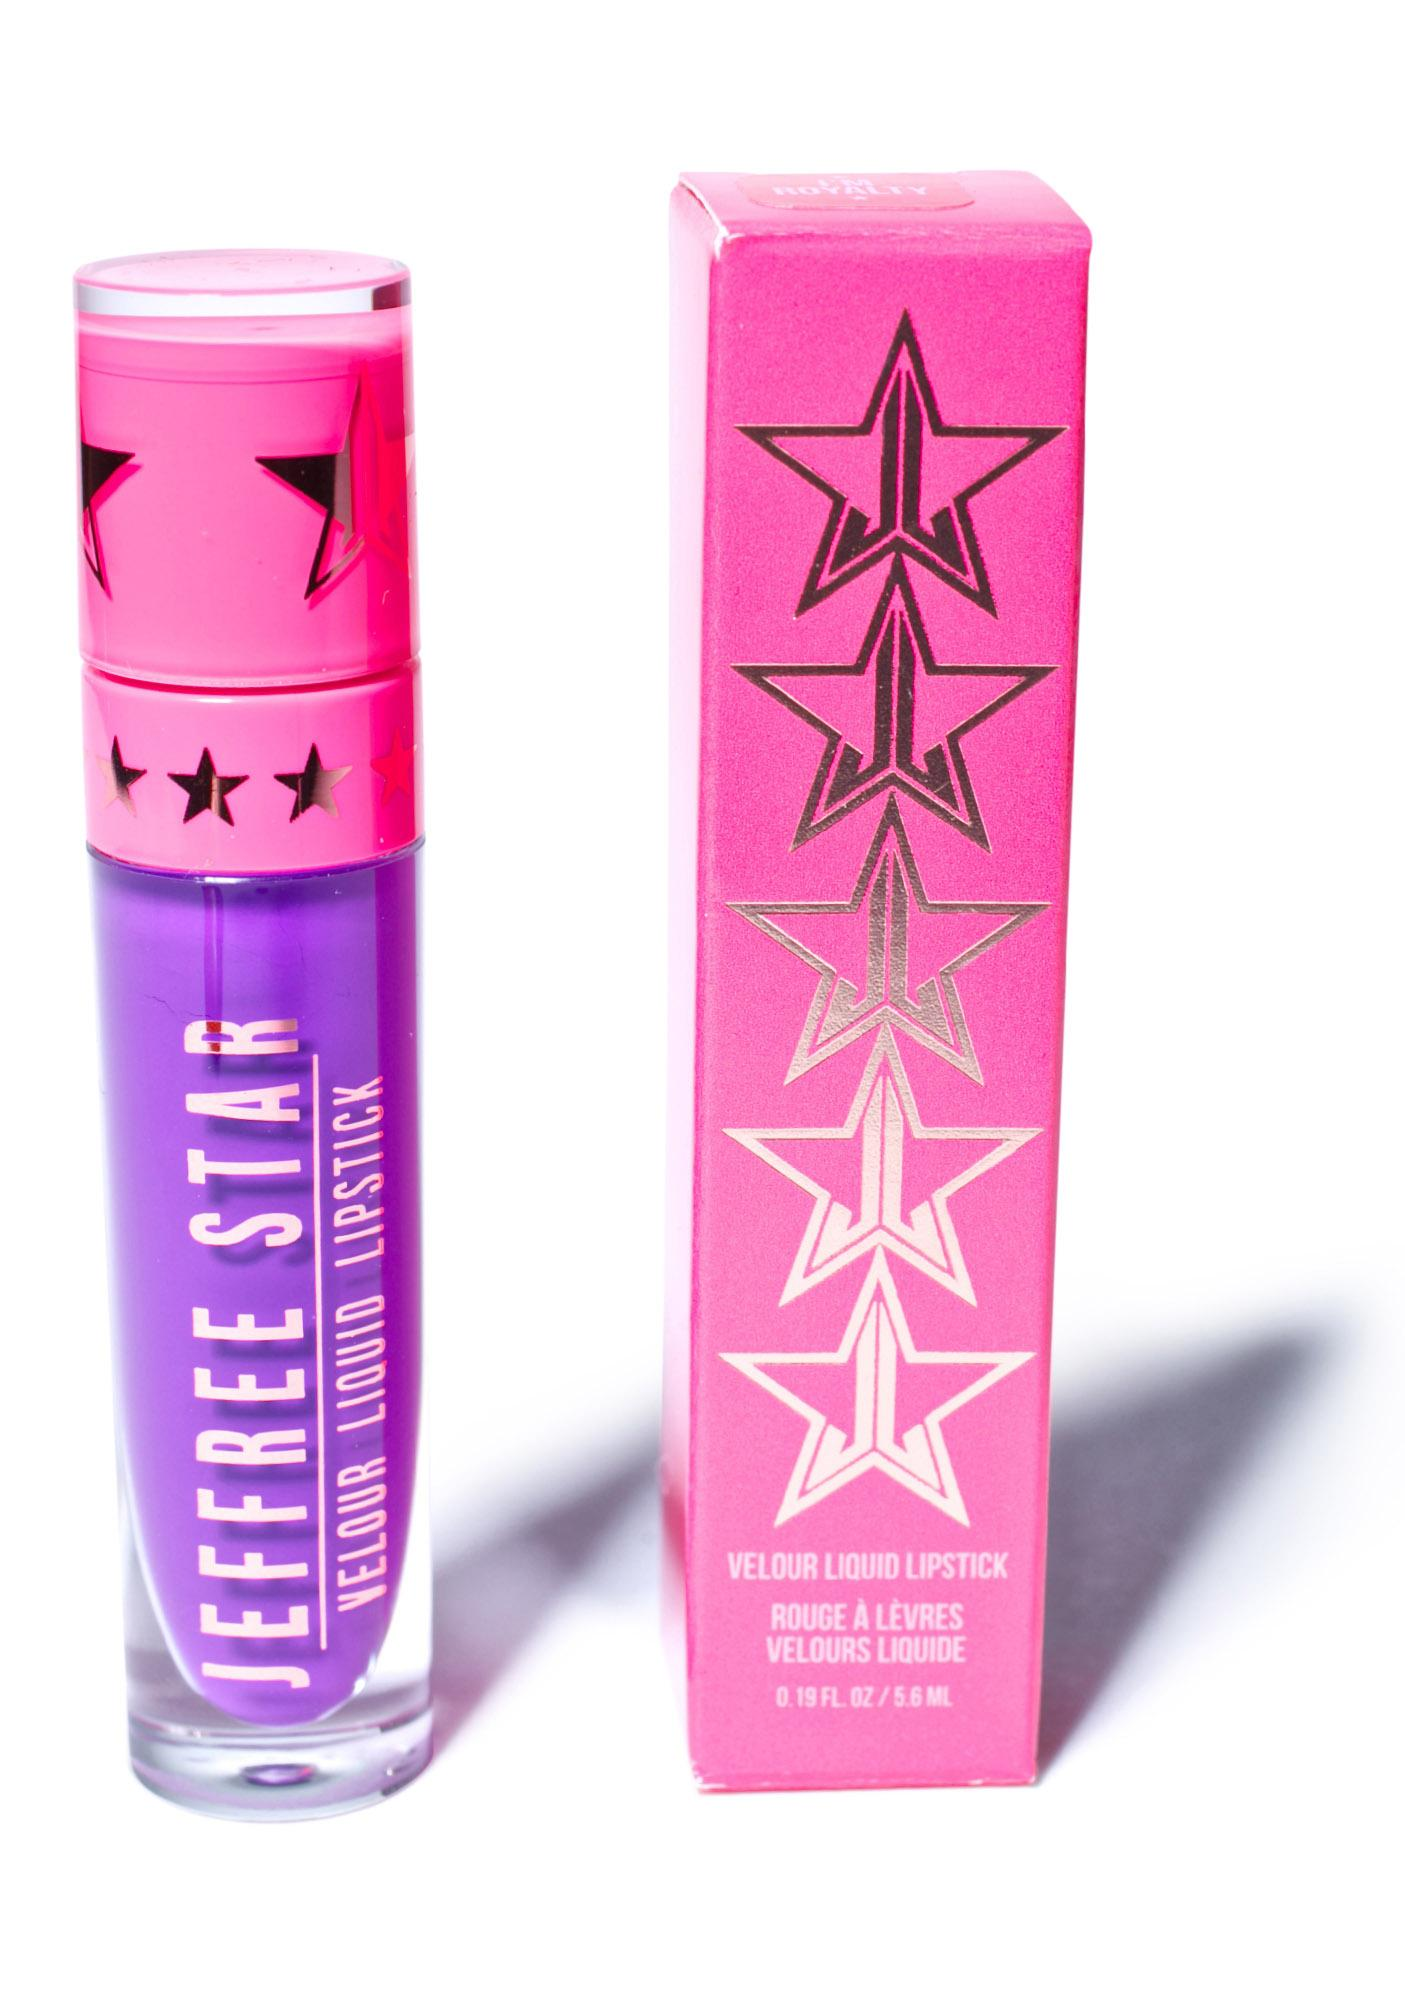 Jeffree Star I'm Royalty Liquid Lipstick